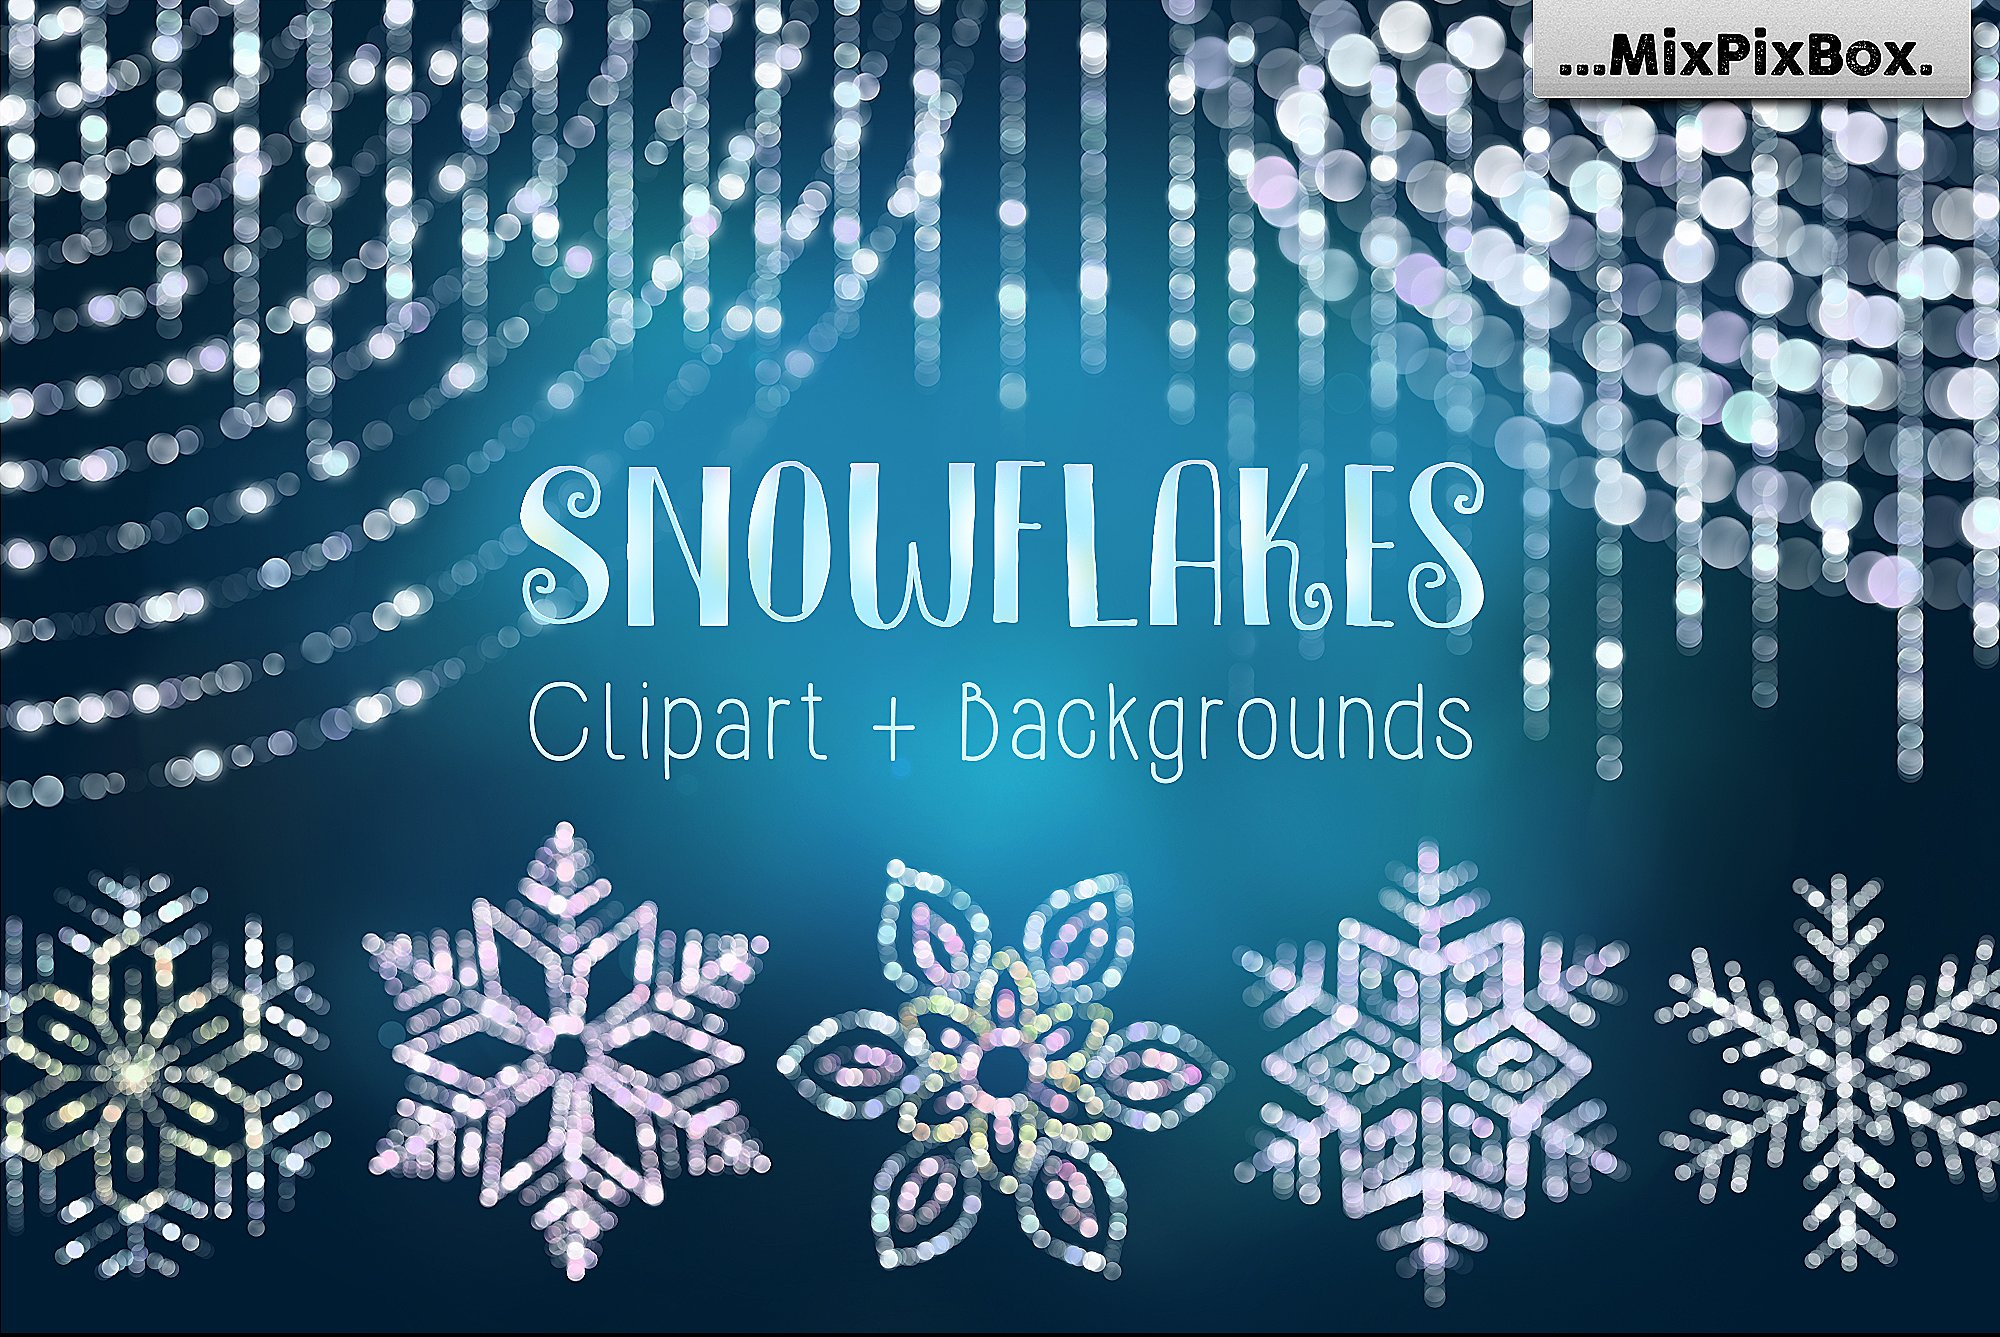 Snowflakes Clipart & Backgrounds